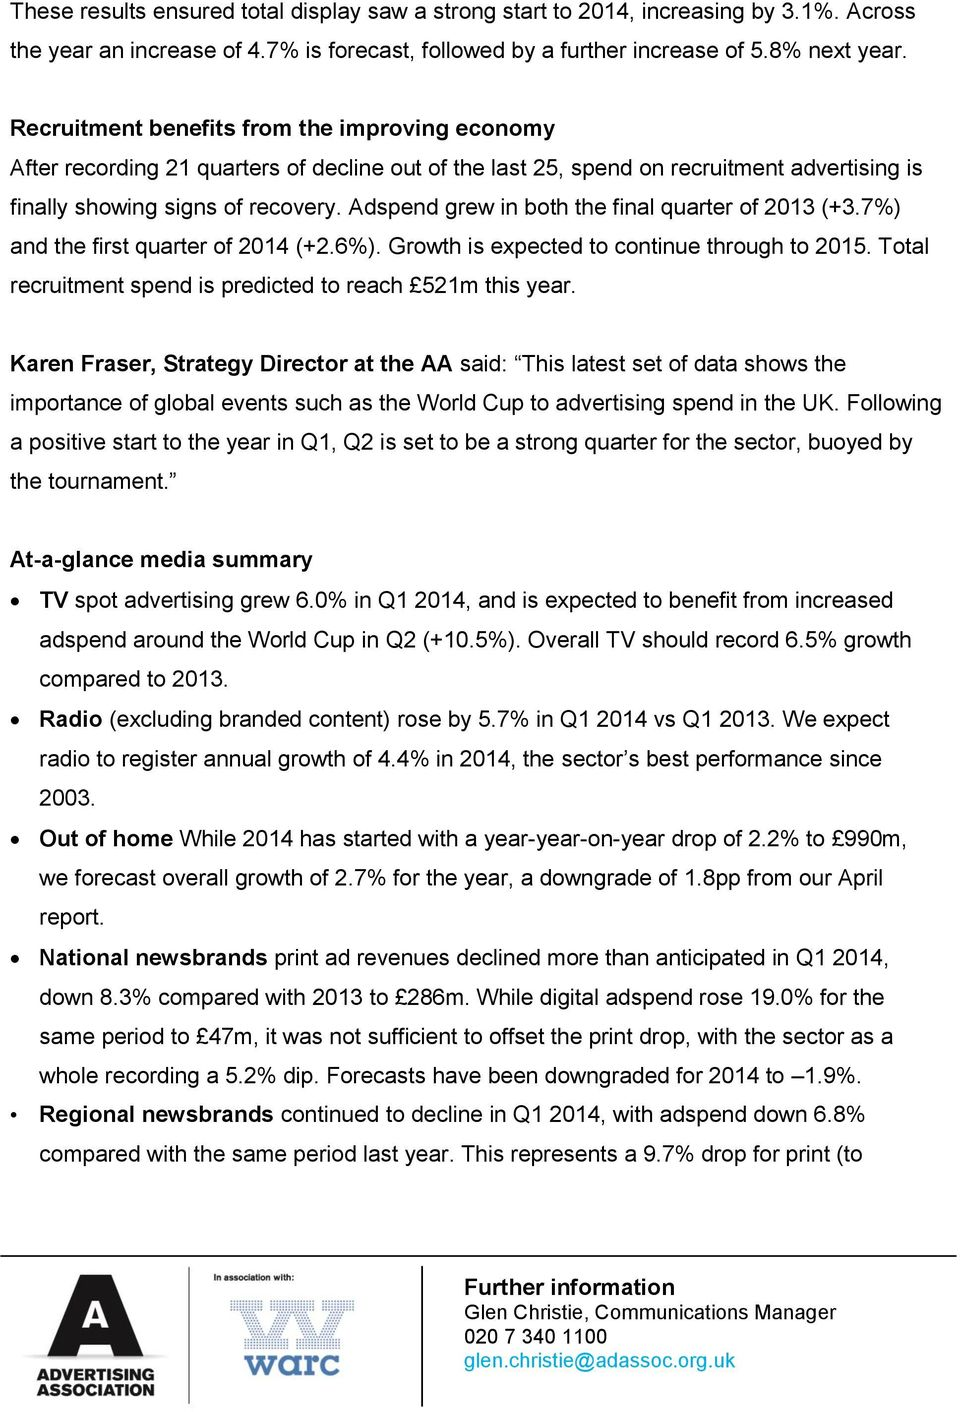 Adspend grew in both the final quarter of 2013 (+3.7%) and the first quarter of 2014 (+2.6%). Growth is expected to continue through to 2015.